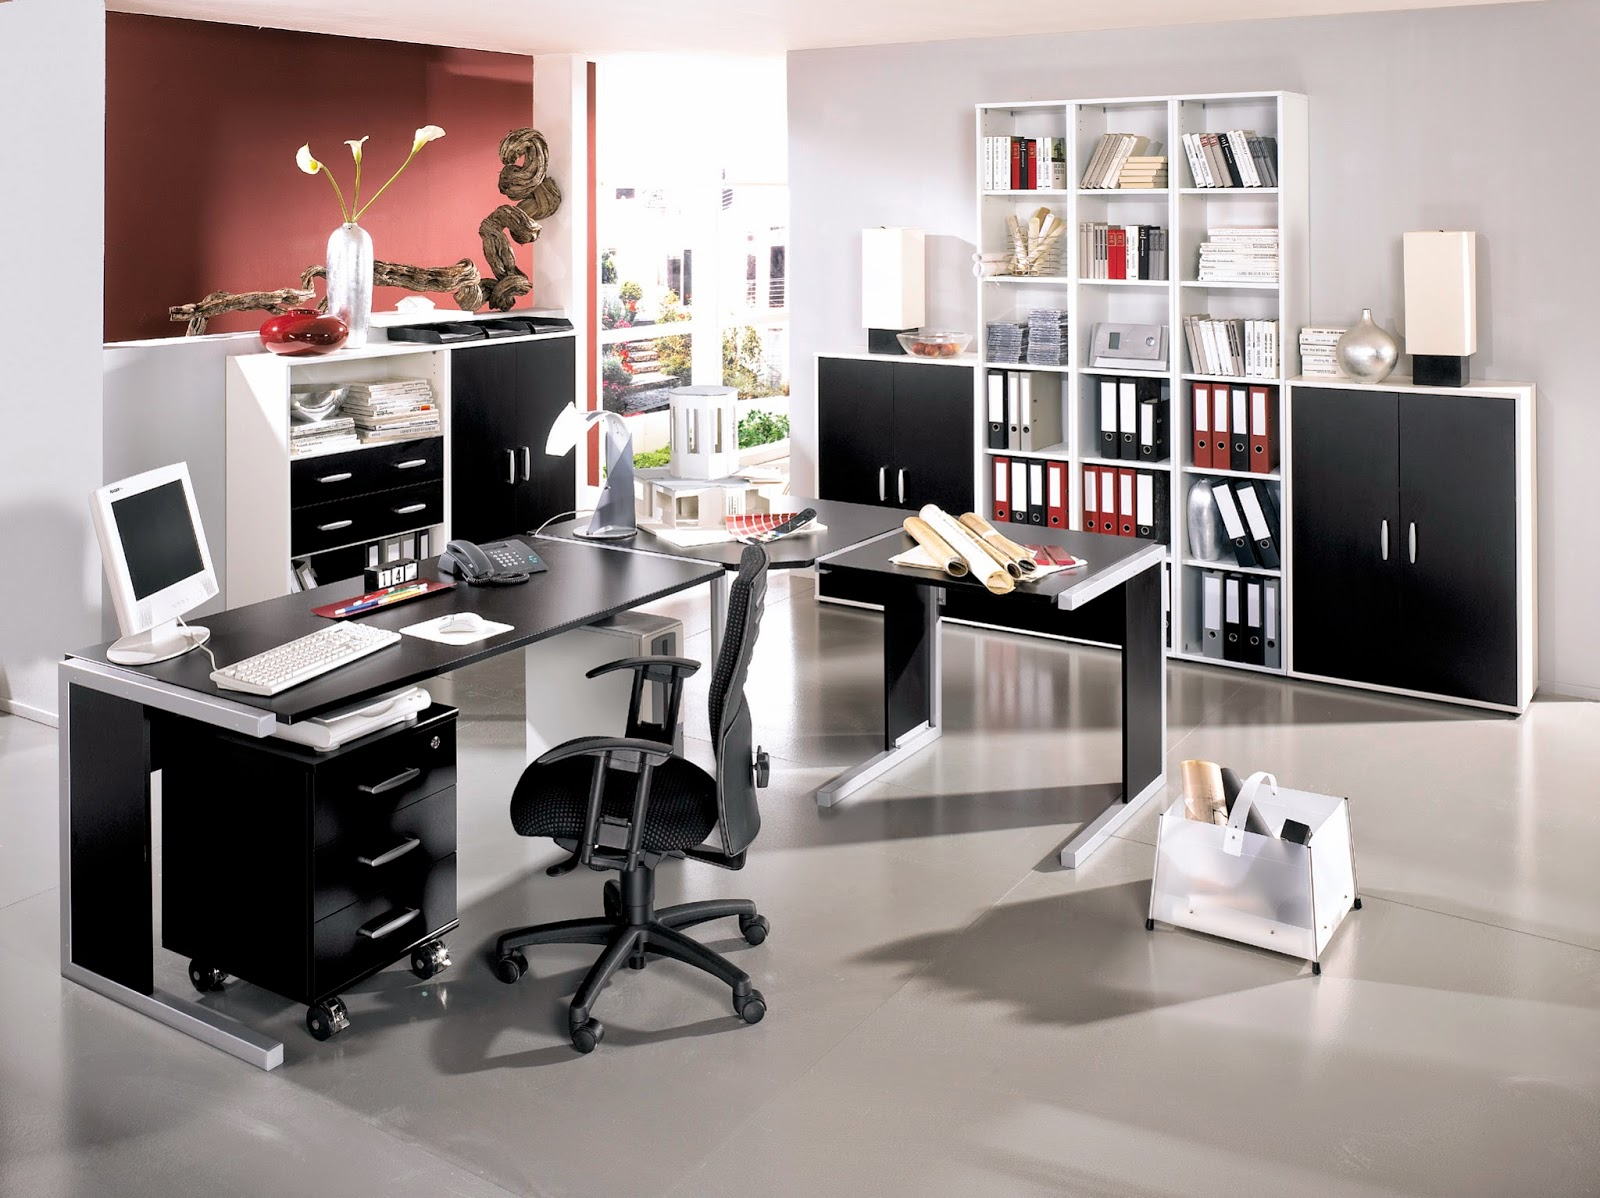 Effective Furniture Designing Tips To Decorate Your Home Office